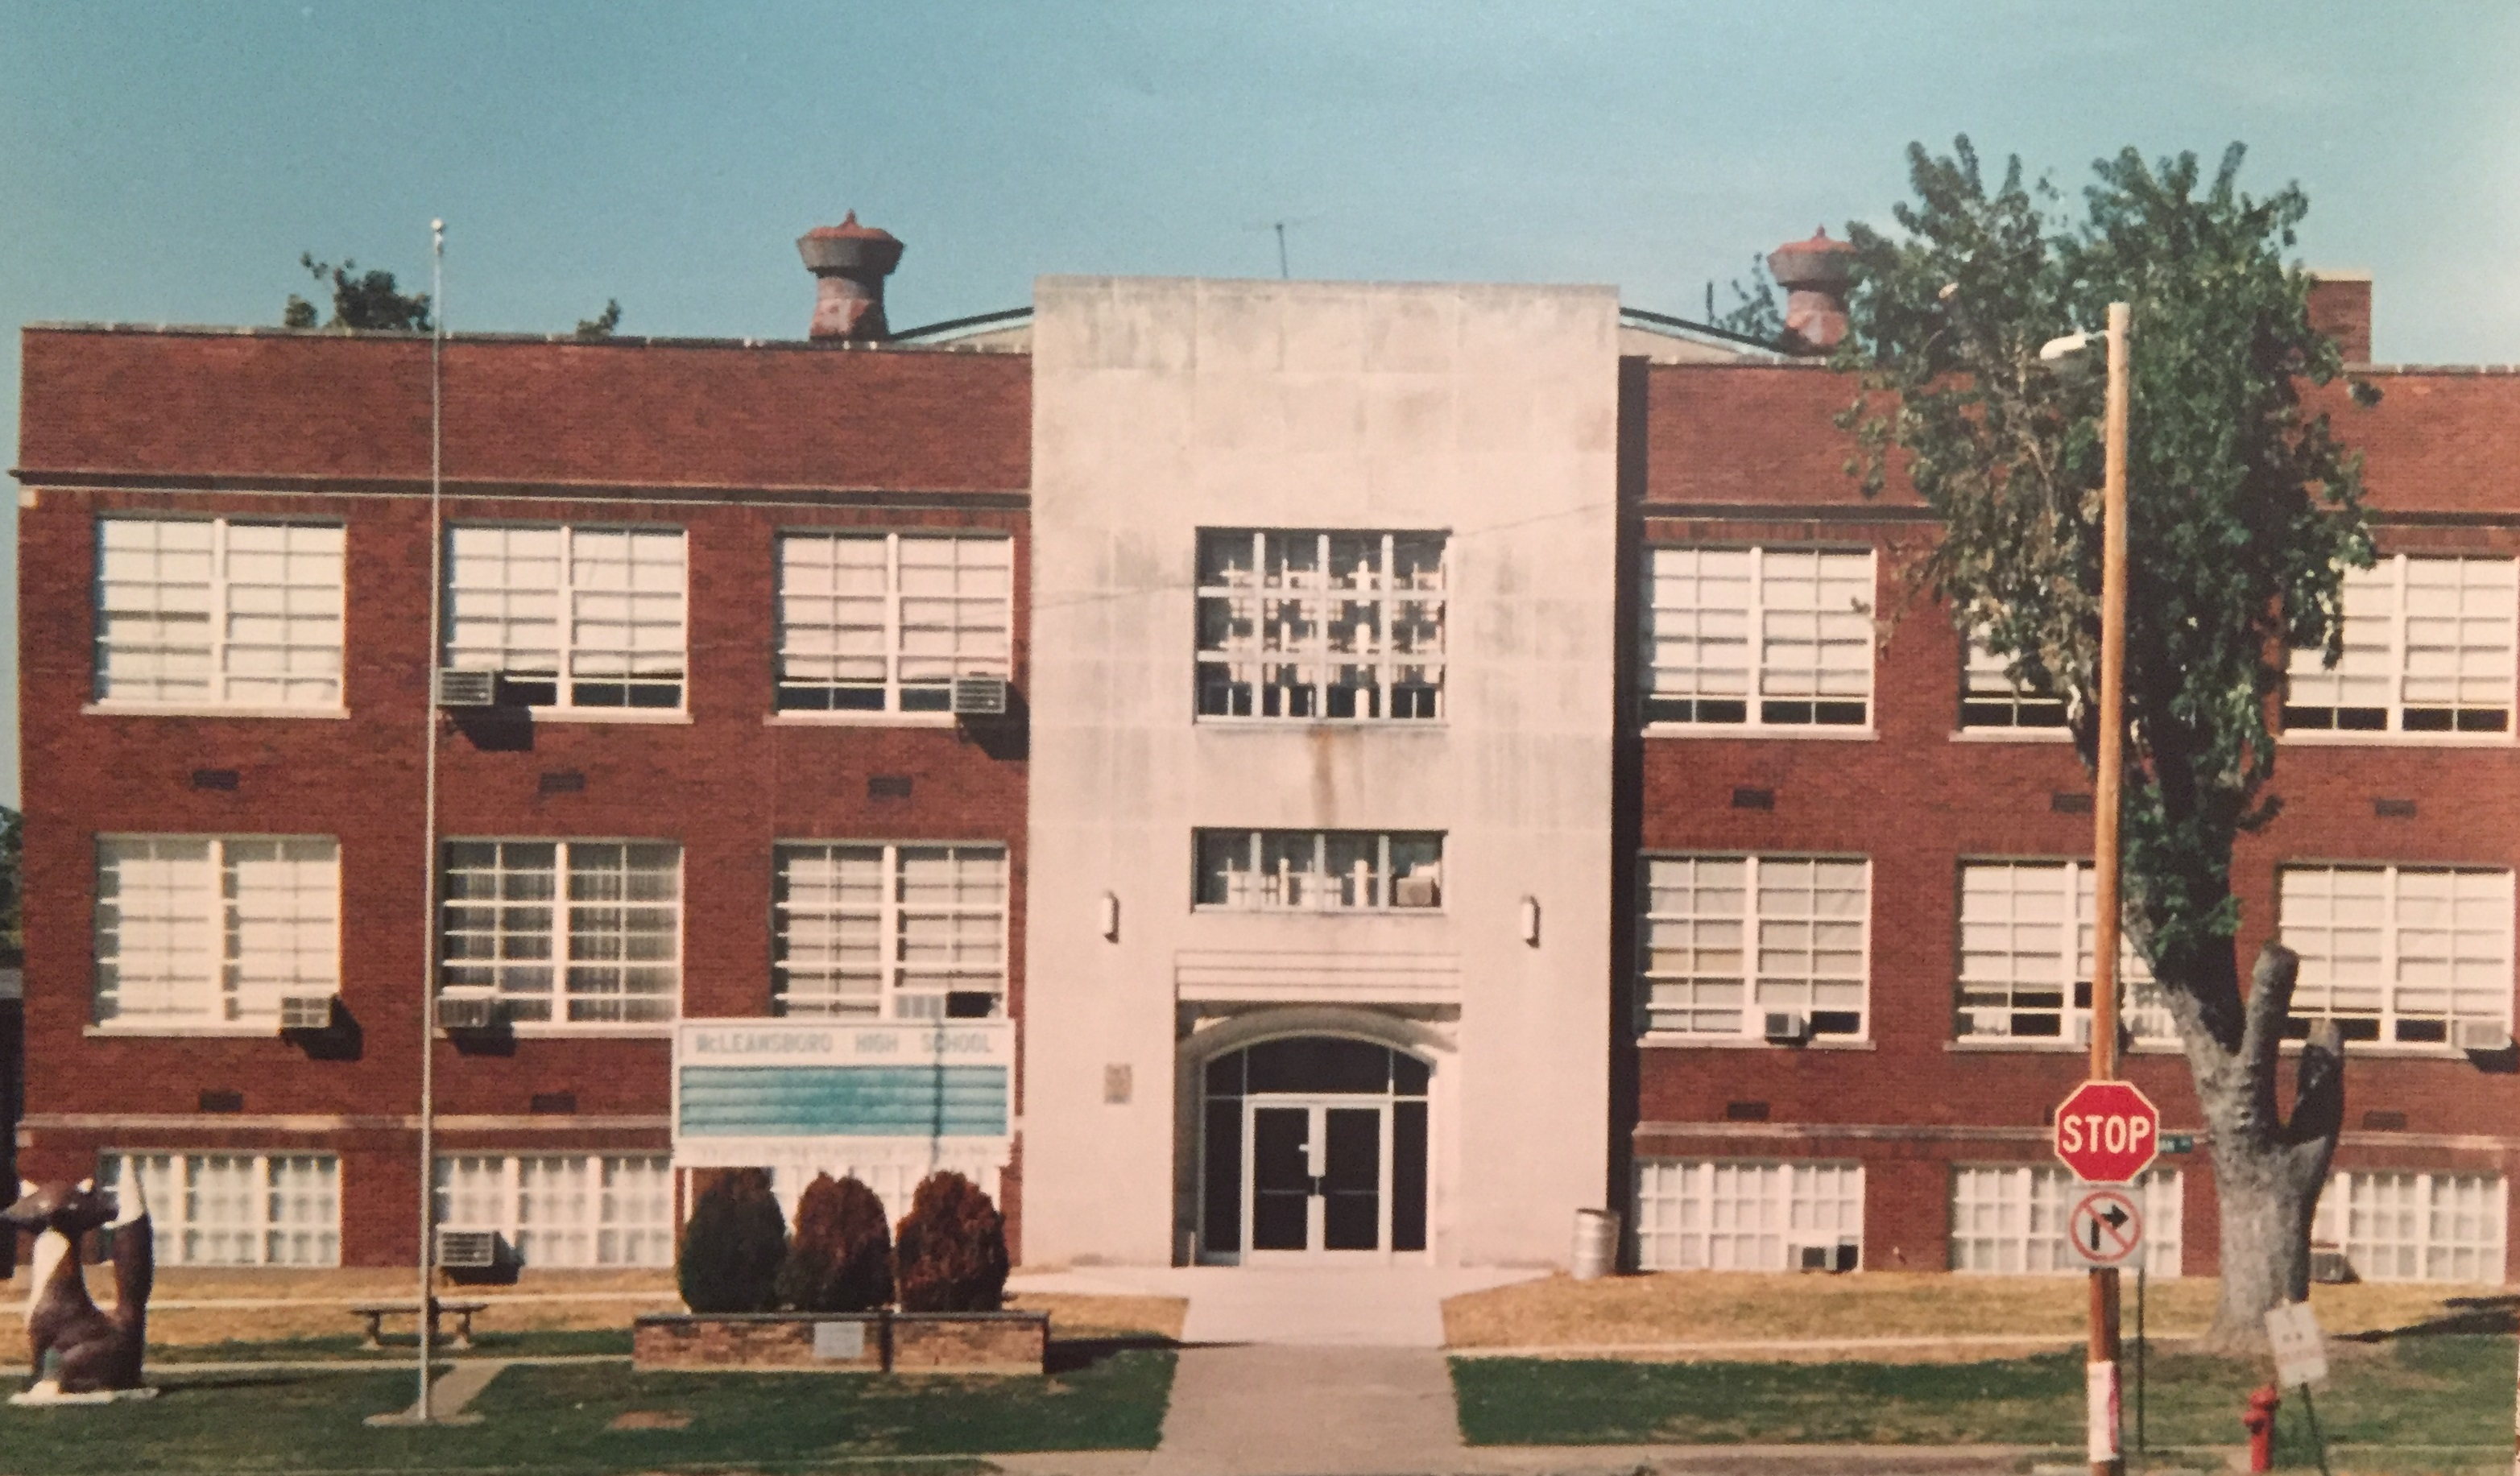 McLeansboro Township High School